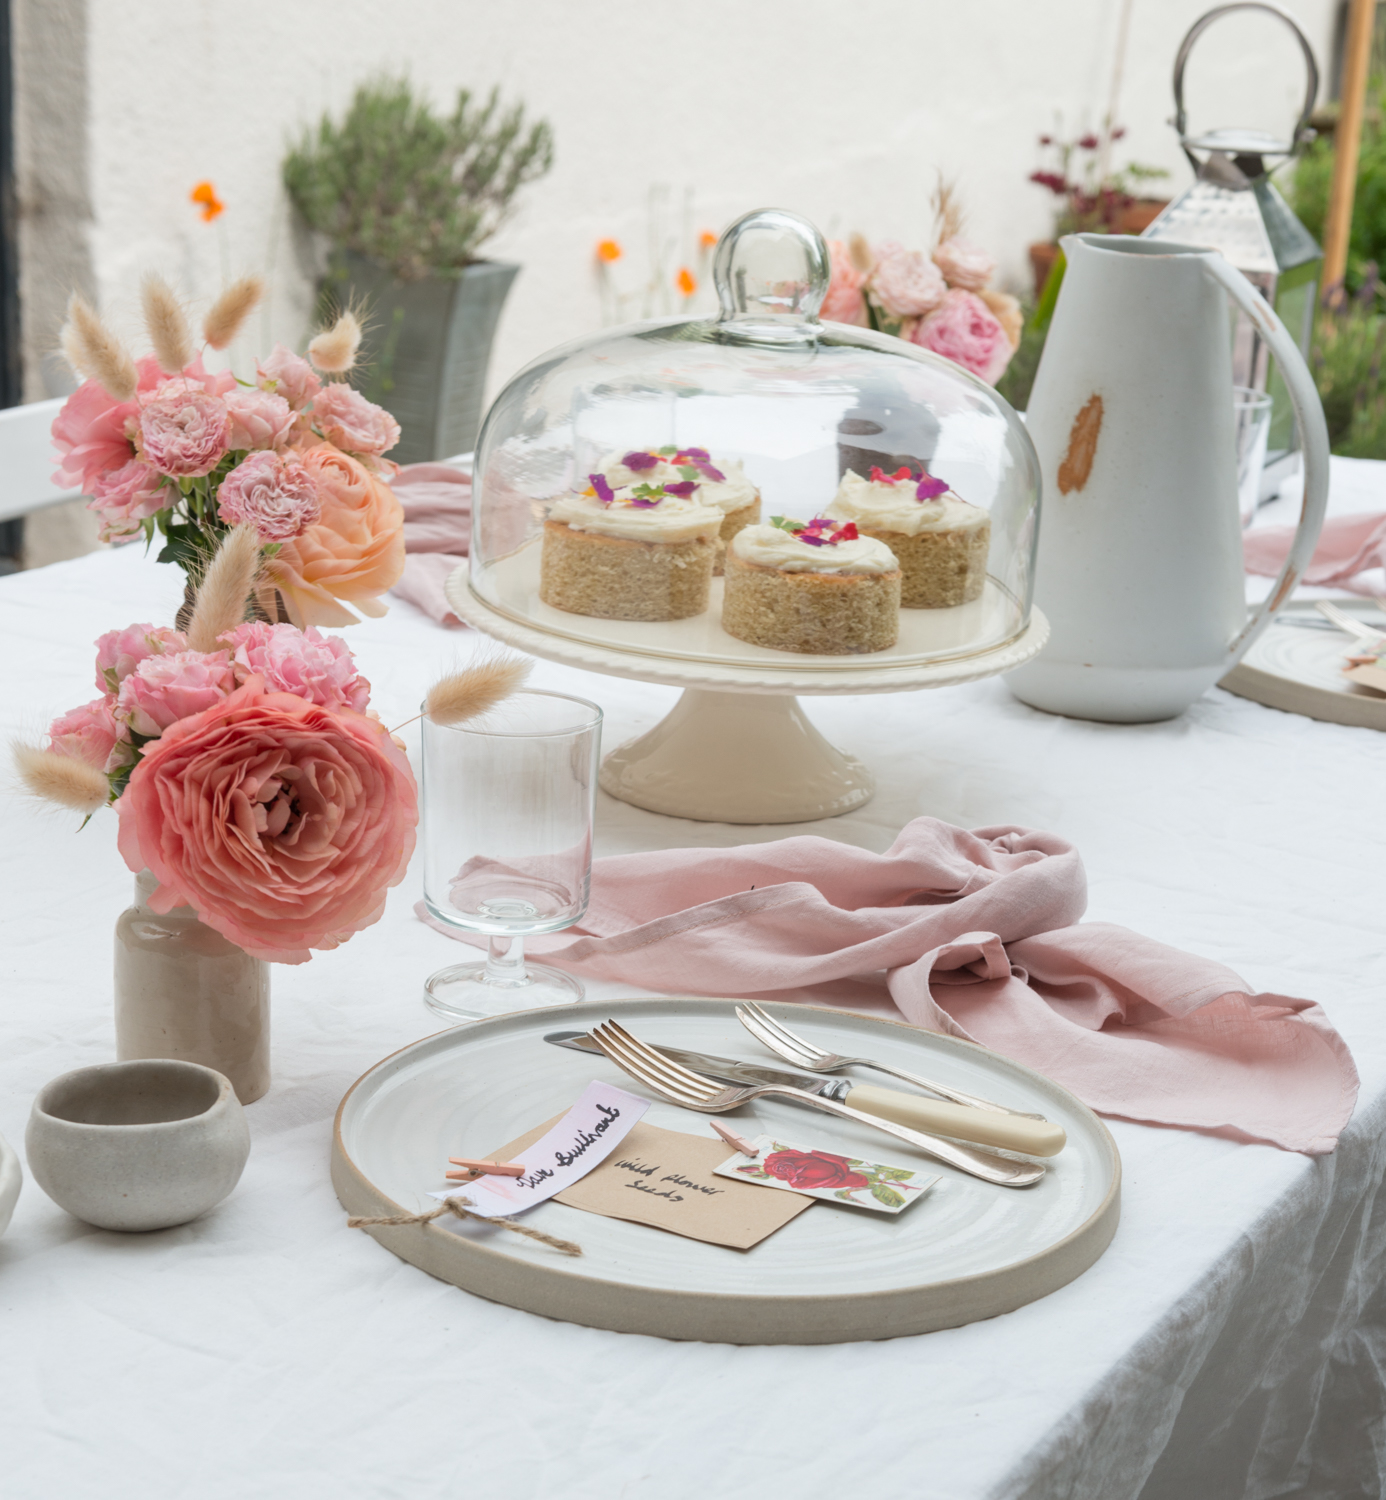 Garden afternoon tea, handmade ceramic plates by Lucy Rutter, Linen table cloth, handmade place settings, watercolour place settings, easy DIY place settings, easy DIY name tags, garden afternoon tea with kids